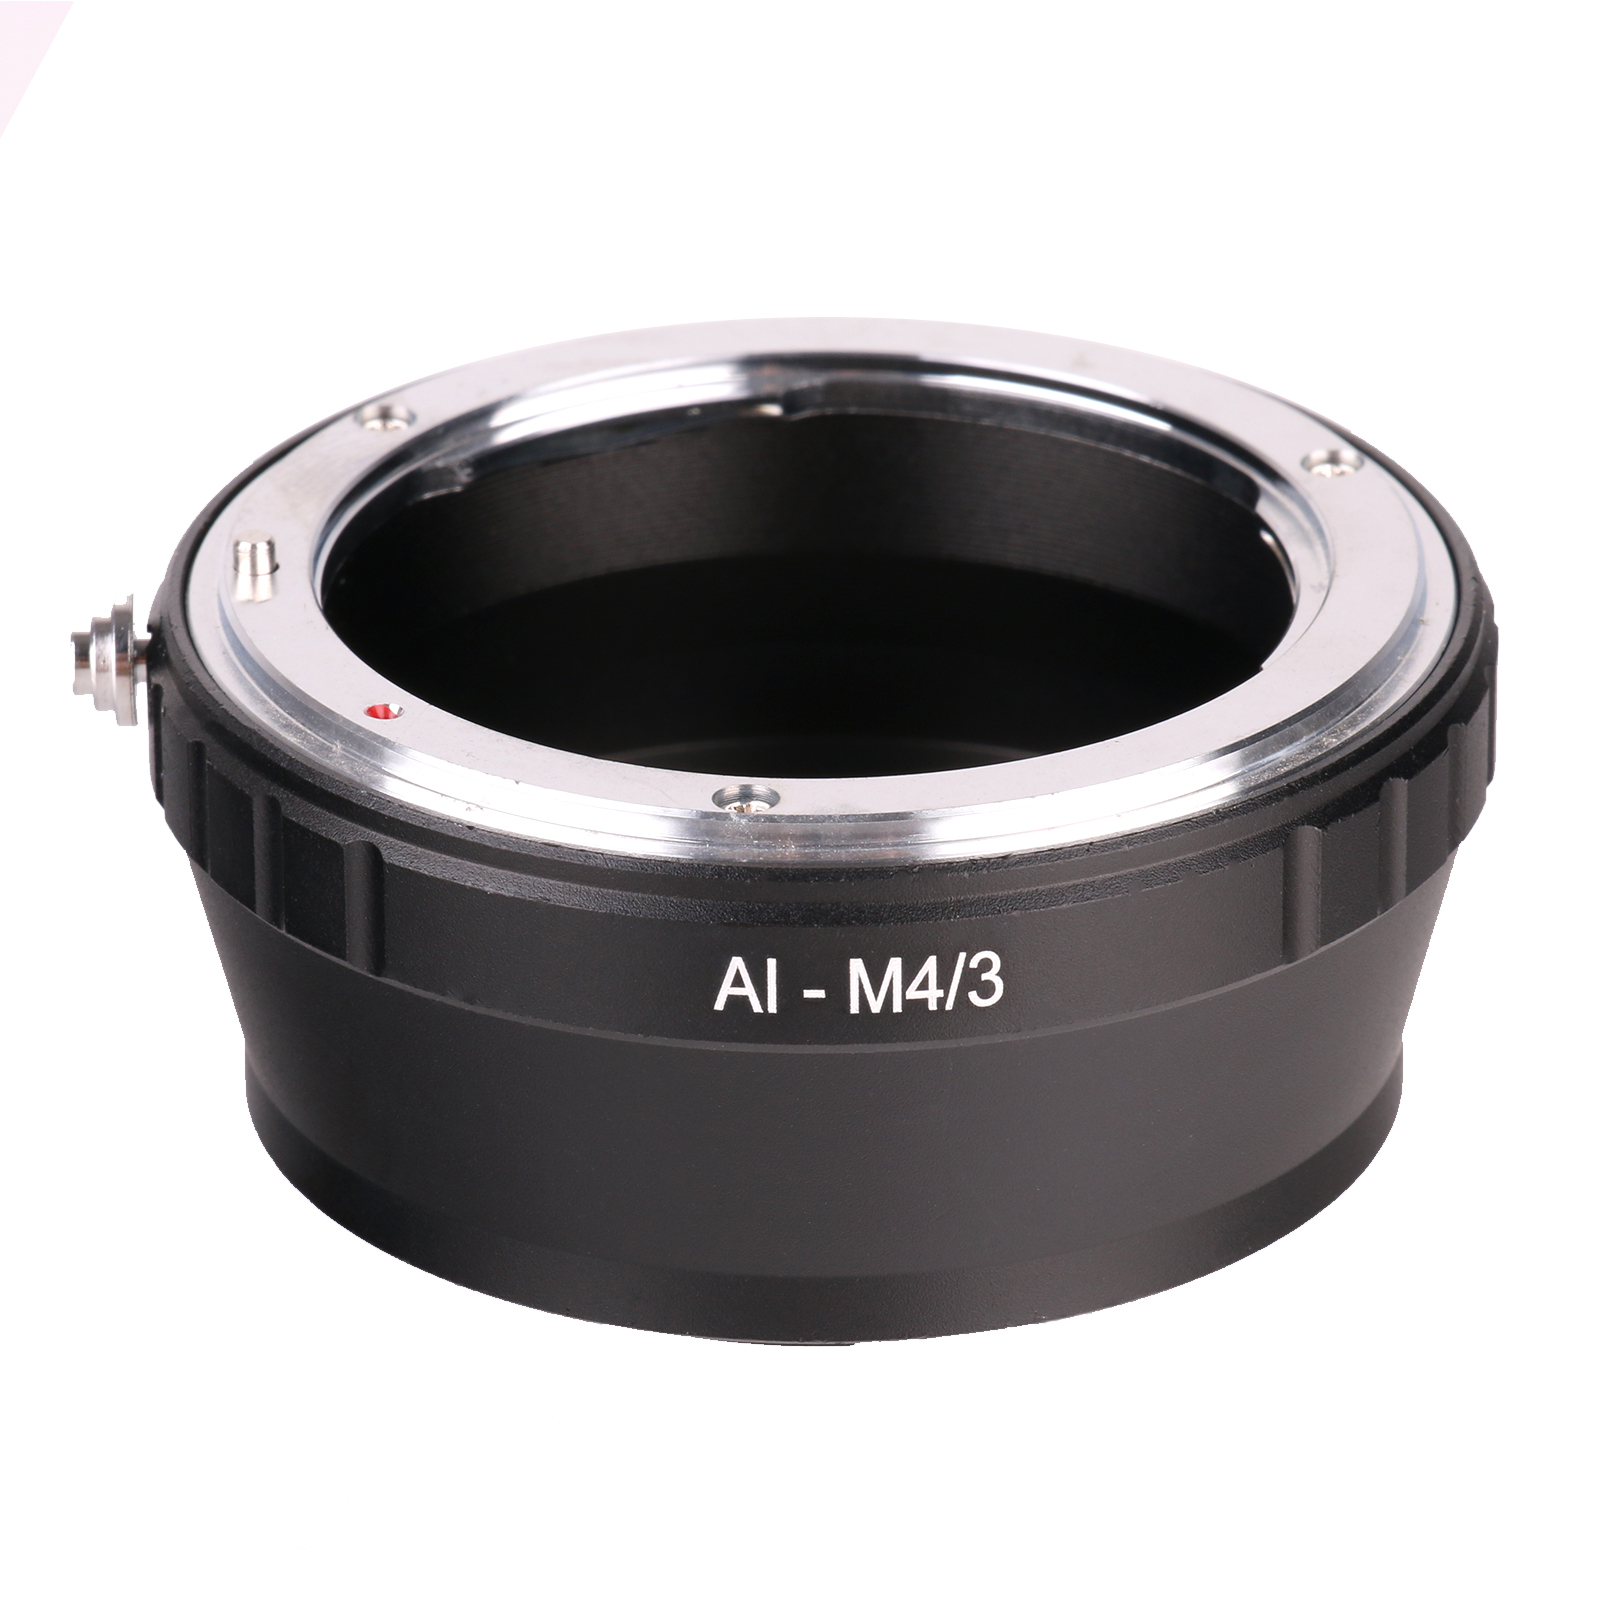 AI-M4/3 Camera Lens Adapter Mount Adapter Ring For Nikon F AI AF Lens To Micro 4/3 Olympus Panasonic